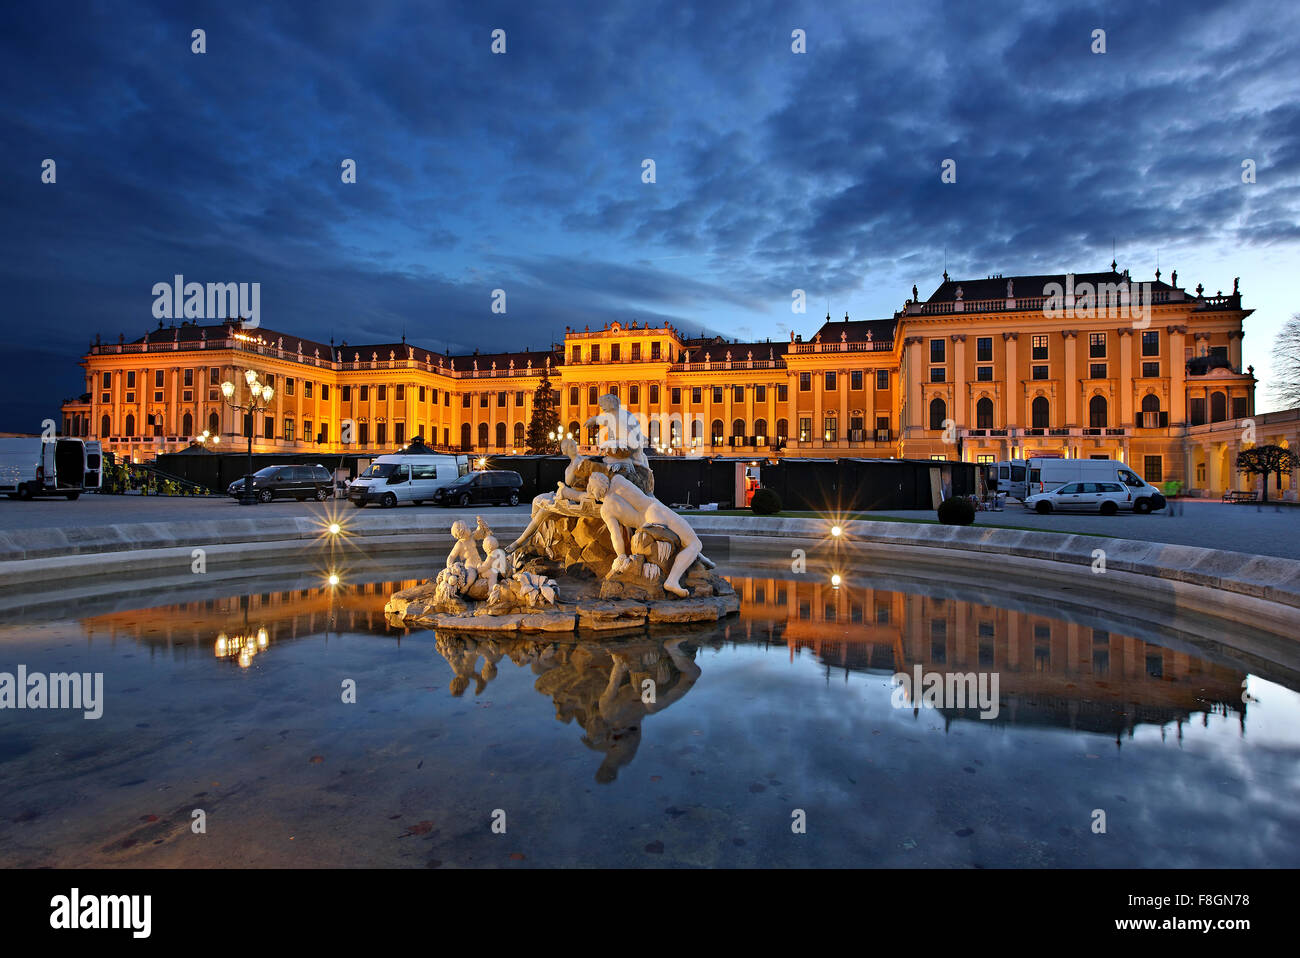 View of the Schönbrunn, summer palace of the Habsburgs, Vienna, Austria - Stock Image